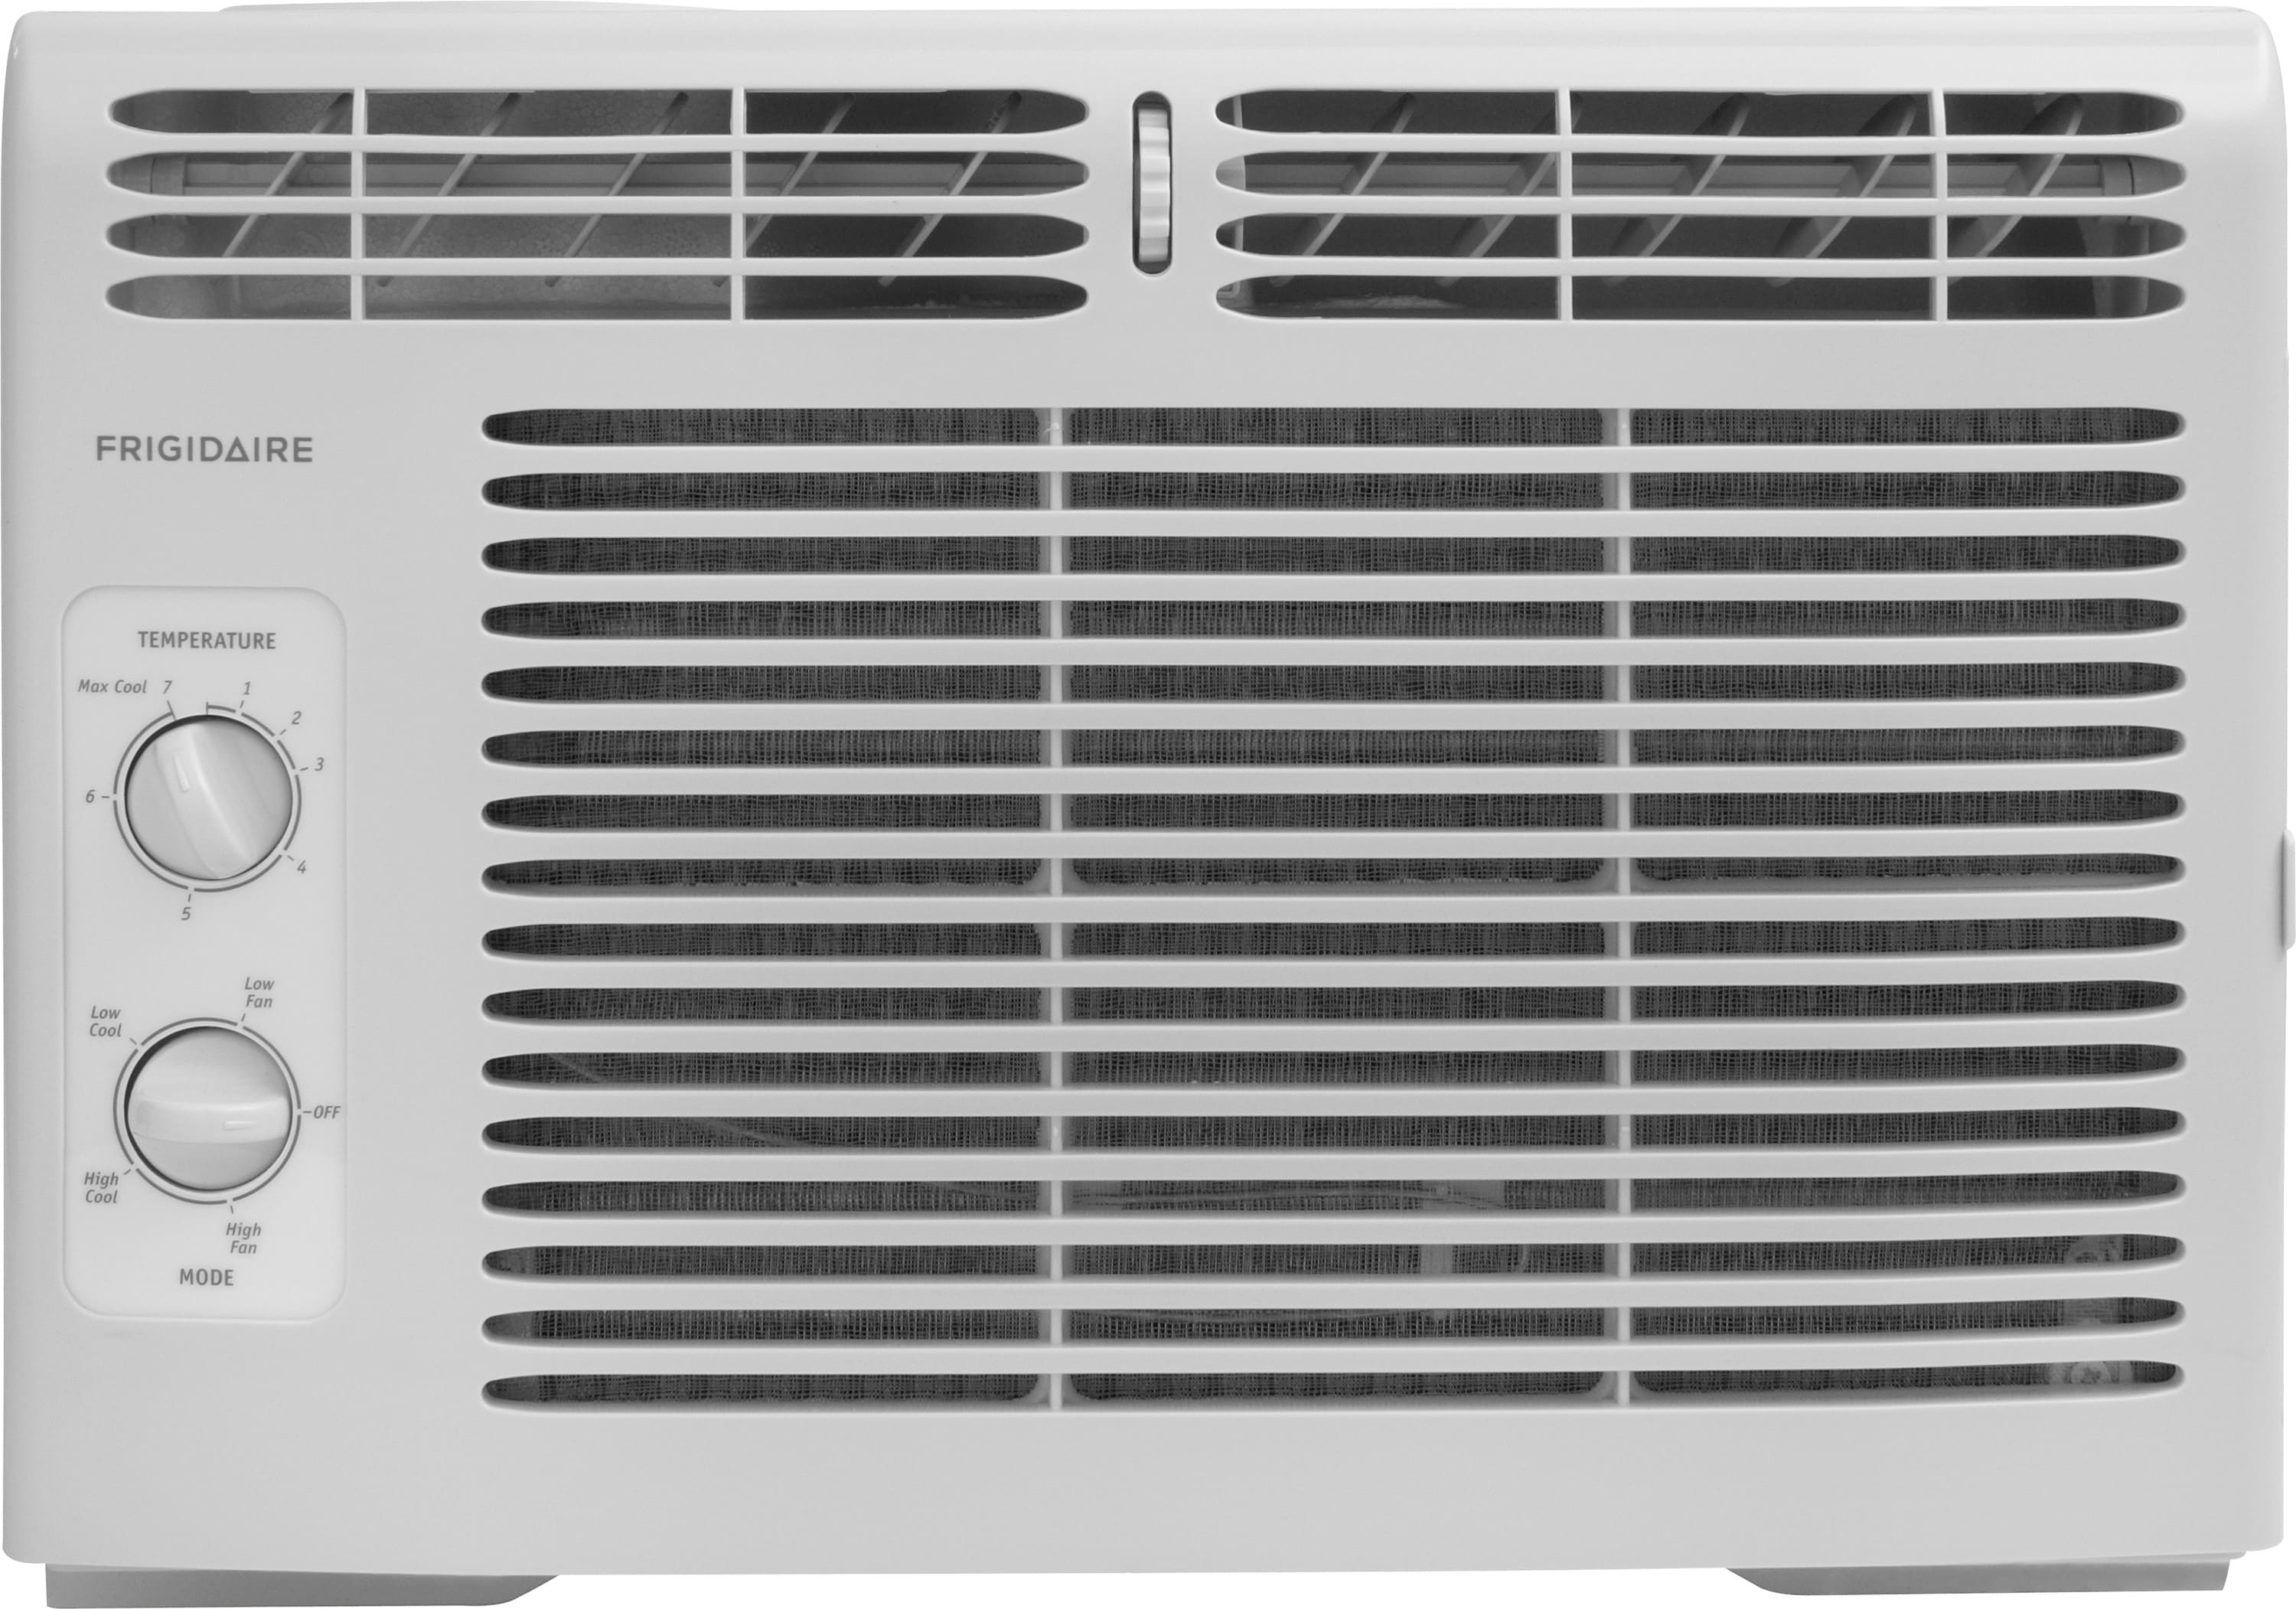 kenmore 5000 btu air conditioner. frigidaire ffra0511r1 5,000 btu window air conditioner with 11.1 eer, r-410a refrigerant, 1.1 pts/hr dehumidification, 150 sq. ft. kenmore 5000 btu